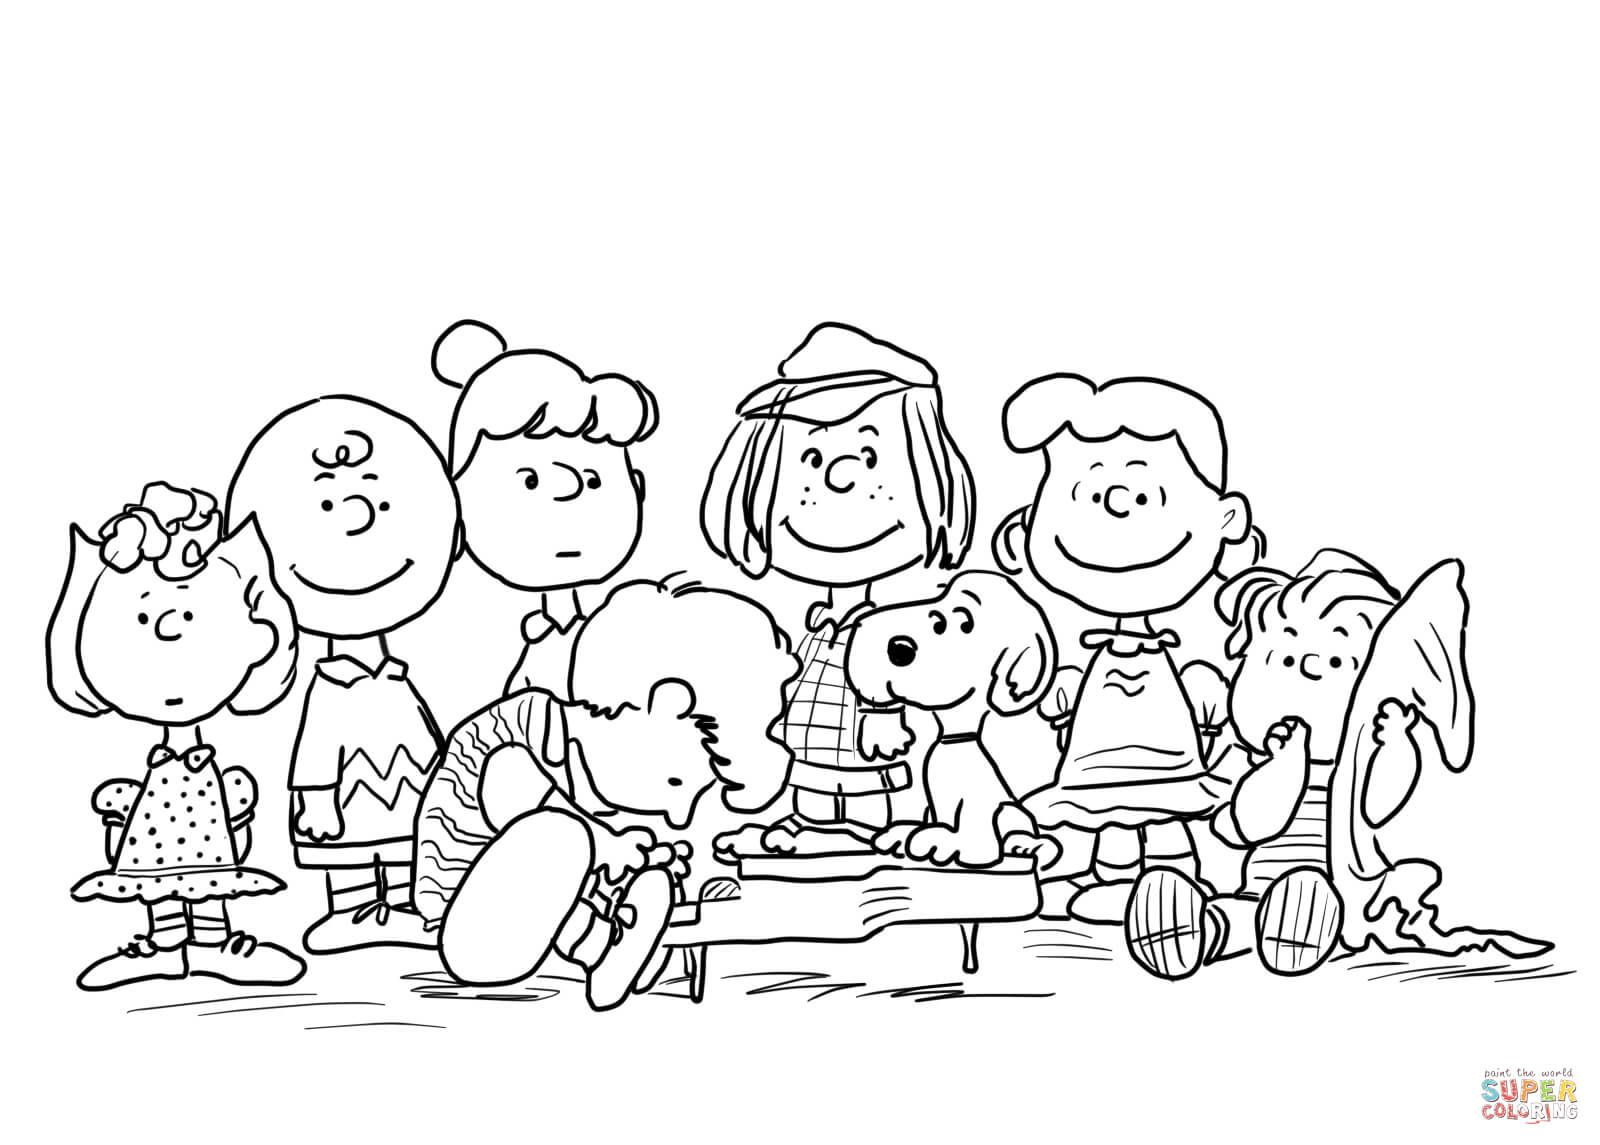 Peanuts Coloring Pages Peanuts Characters Coloring Page Free Printable Coloring Pages Davemelillo Com Snoopy Coloring Pages Thanksgiving Coloring Pages Halloween Coloring Pages